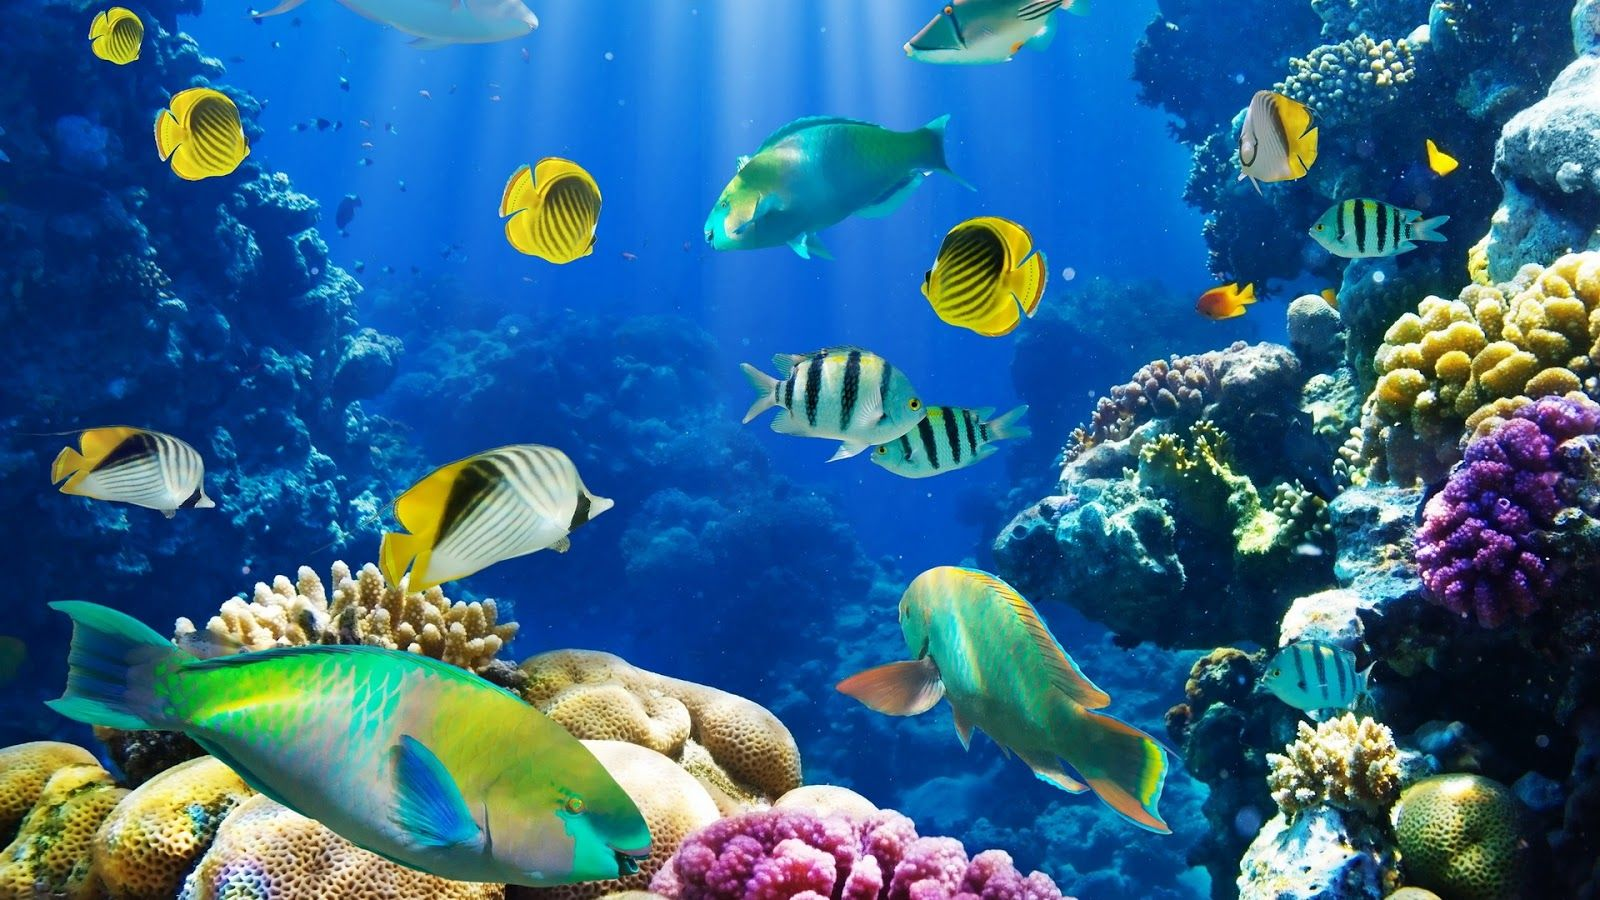 Download Free Live Wallpapers For Android Phones Epic Car Fish Wallpaper Live Wallpaper For Pc Motion Wallpapers